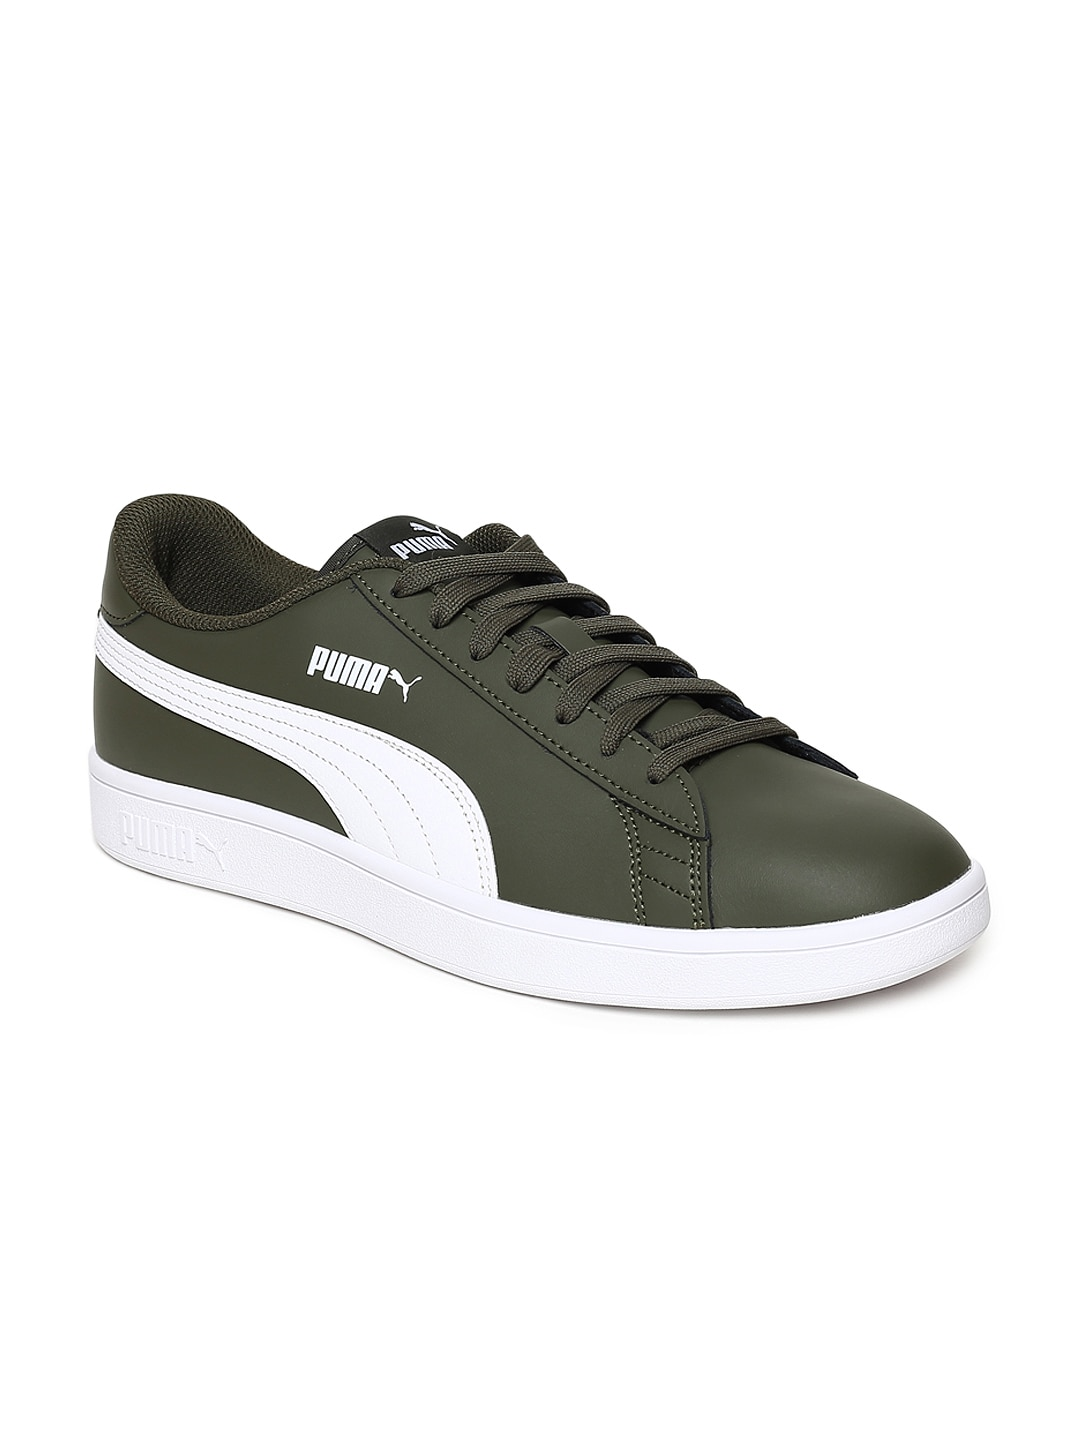 e5652006ed4a Puma Shoes - Buy Puma Shoes for Men   Women Online in India